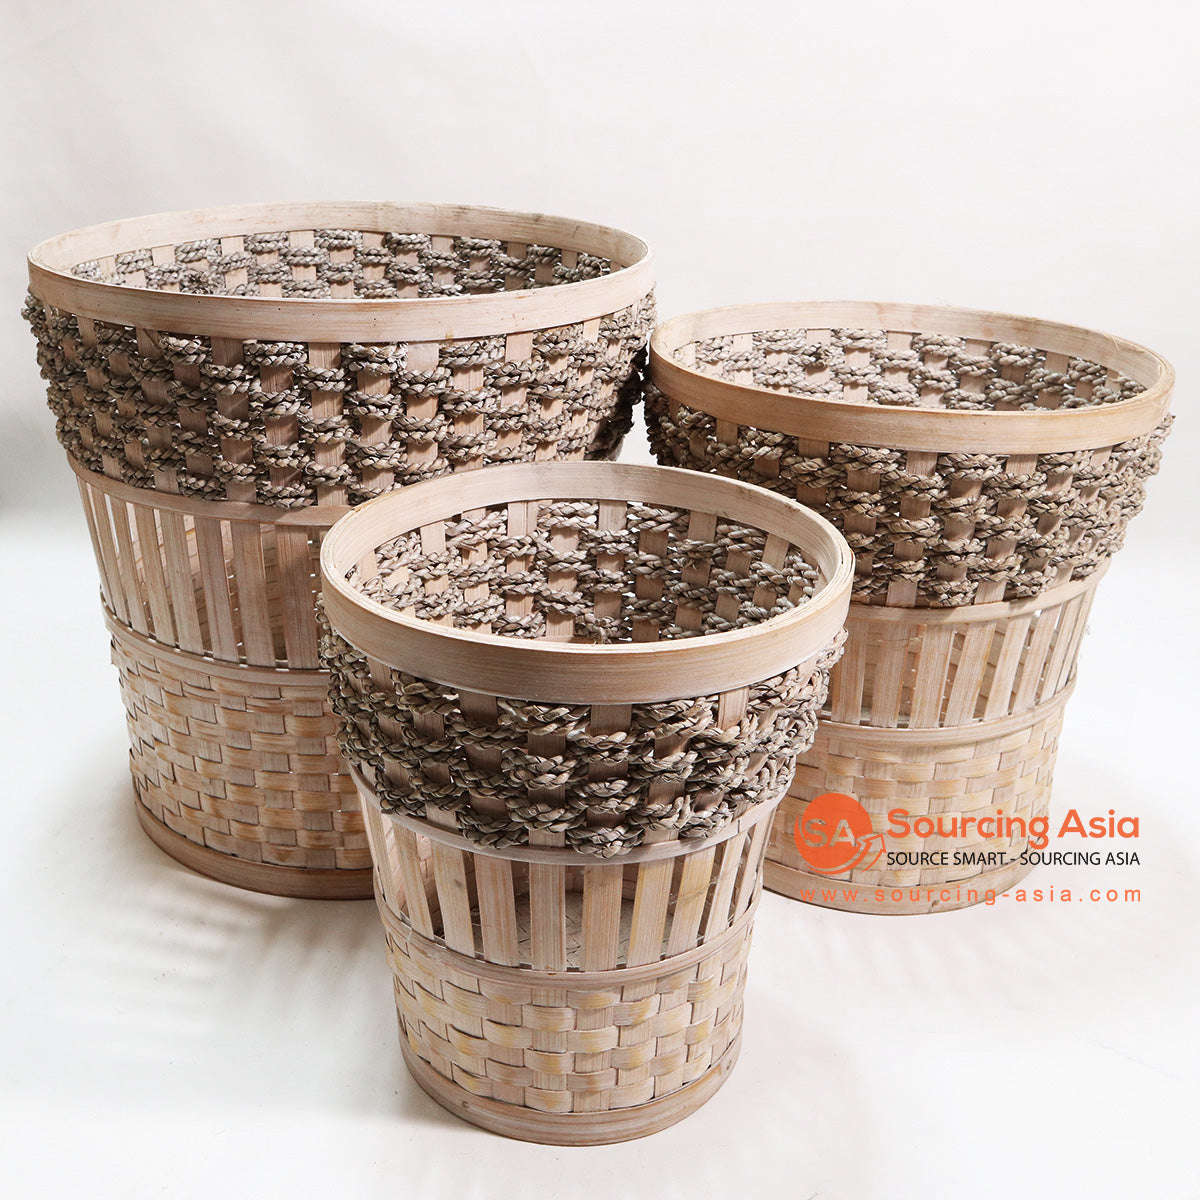 HBSC107 SET OF 3 BAMBOO AND SEA GRASS BASKETS